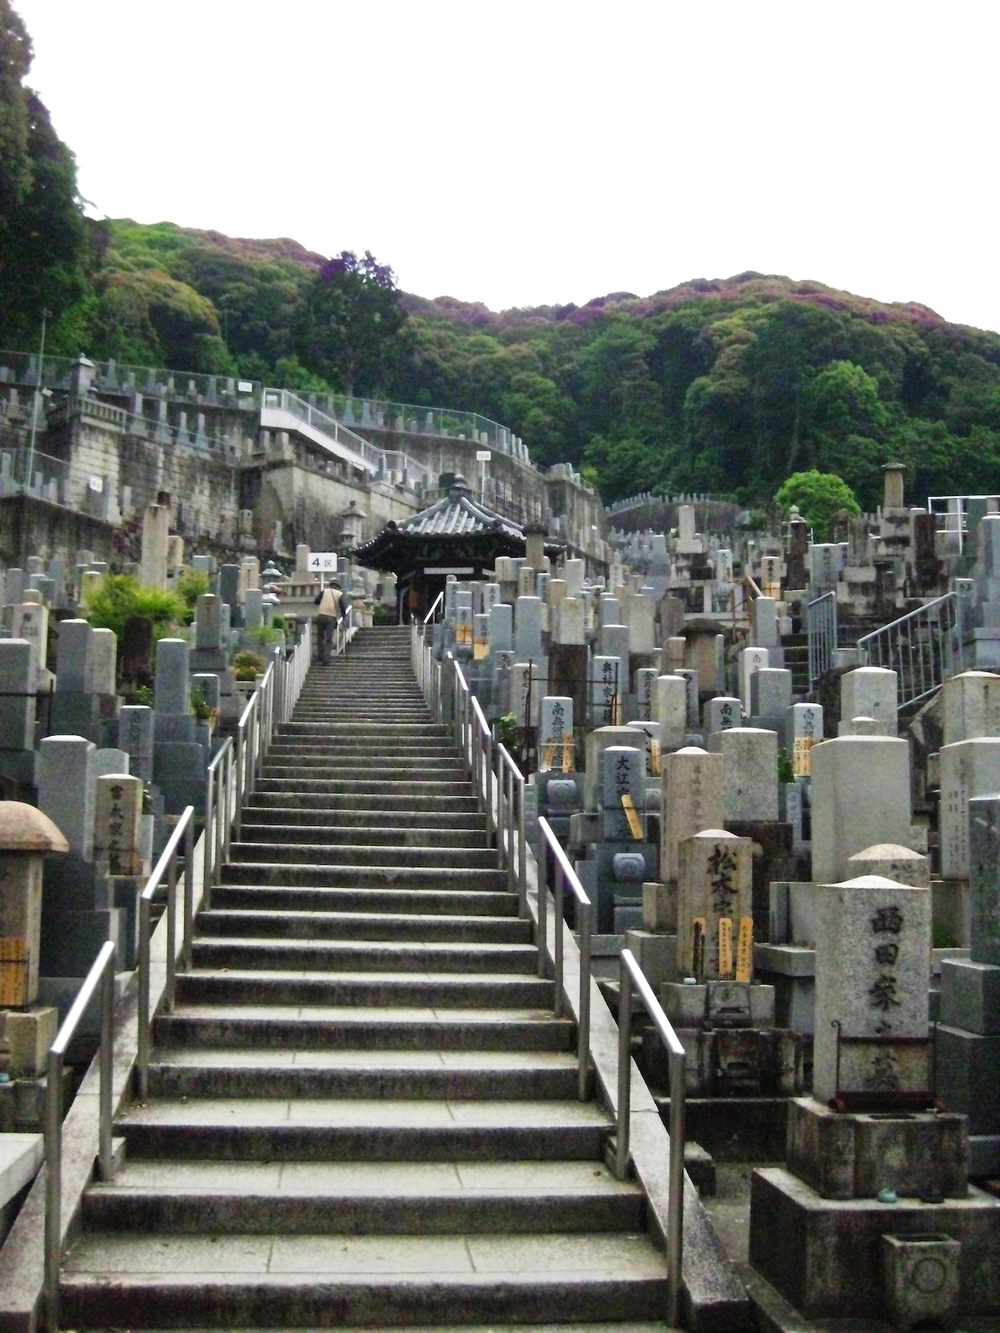 Cemetary in Kyoto